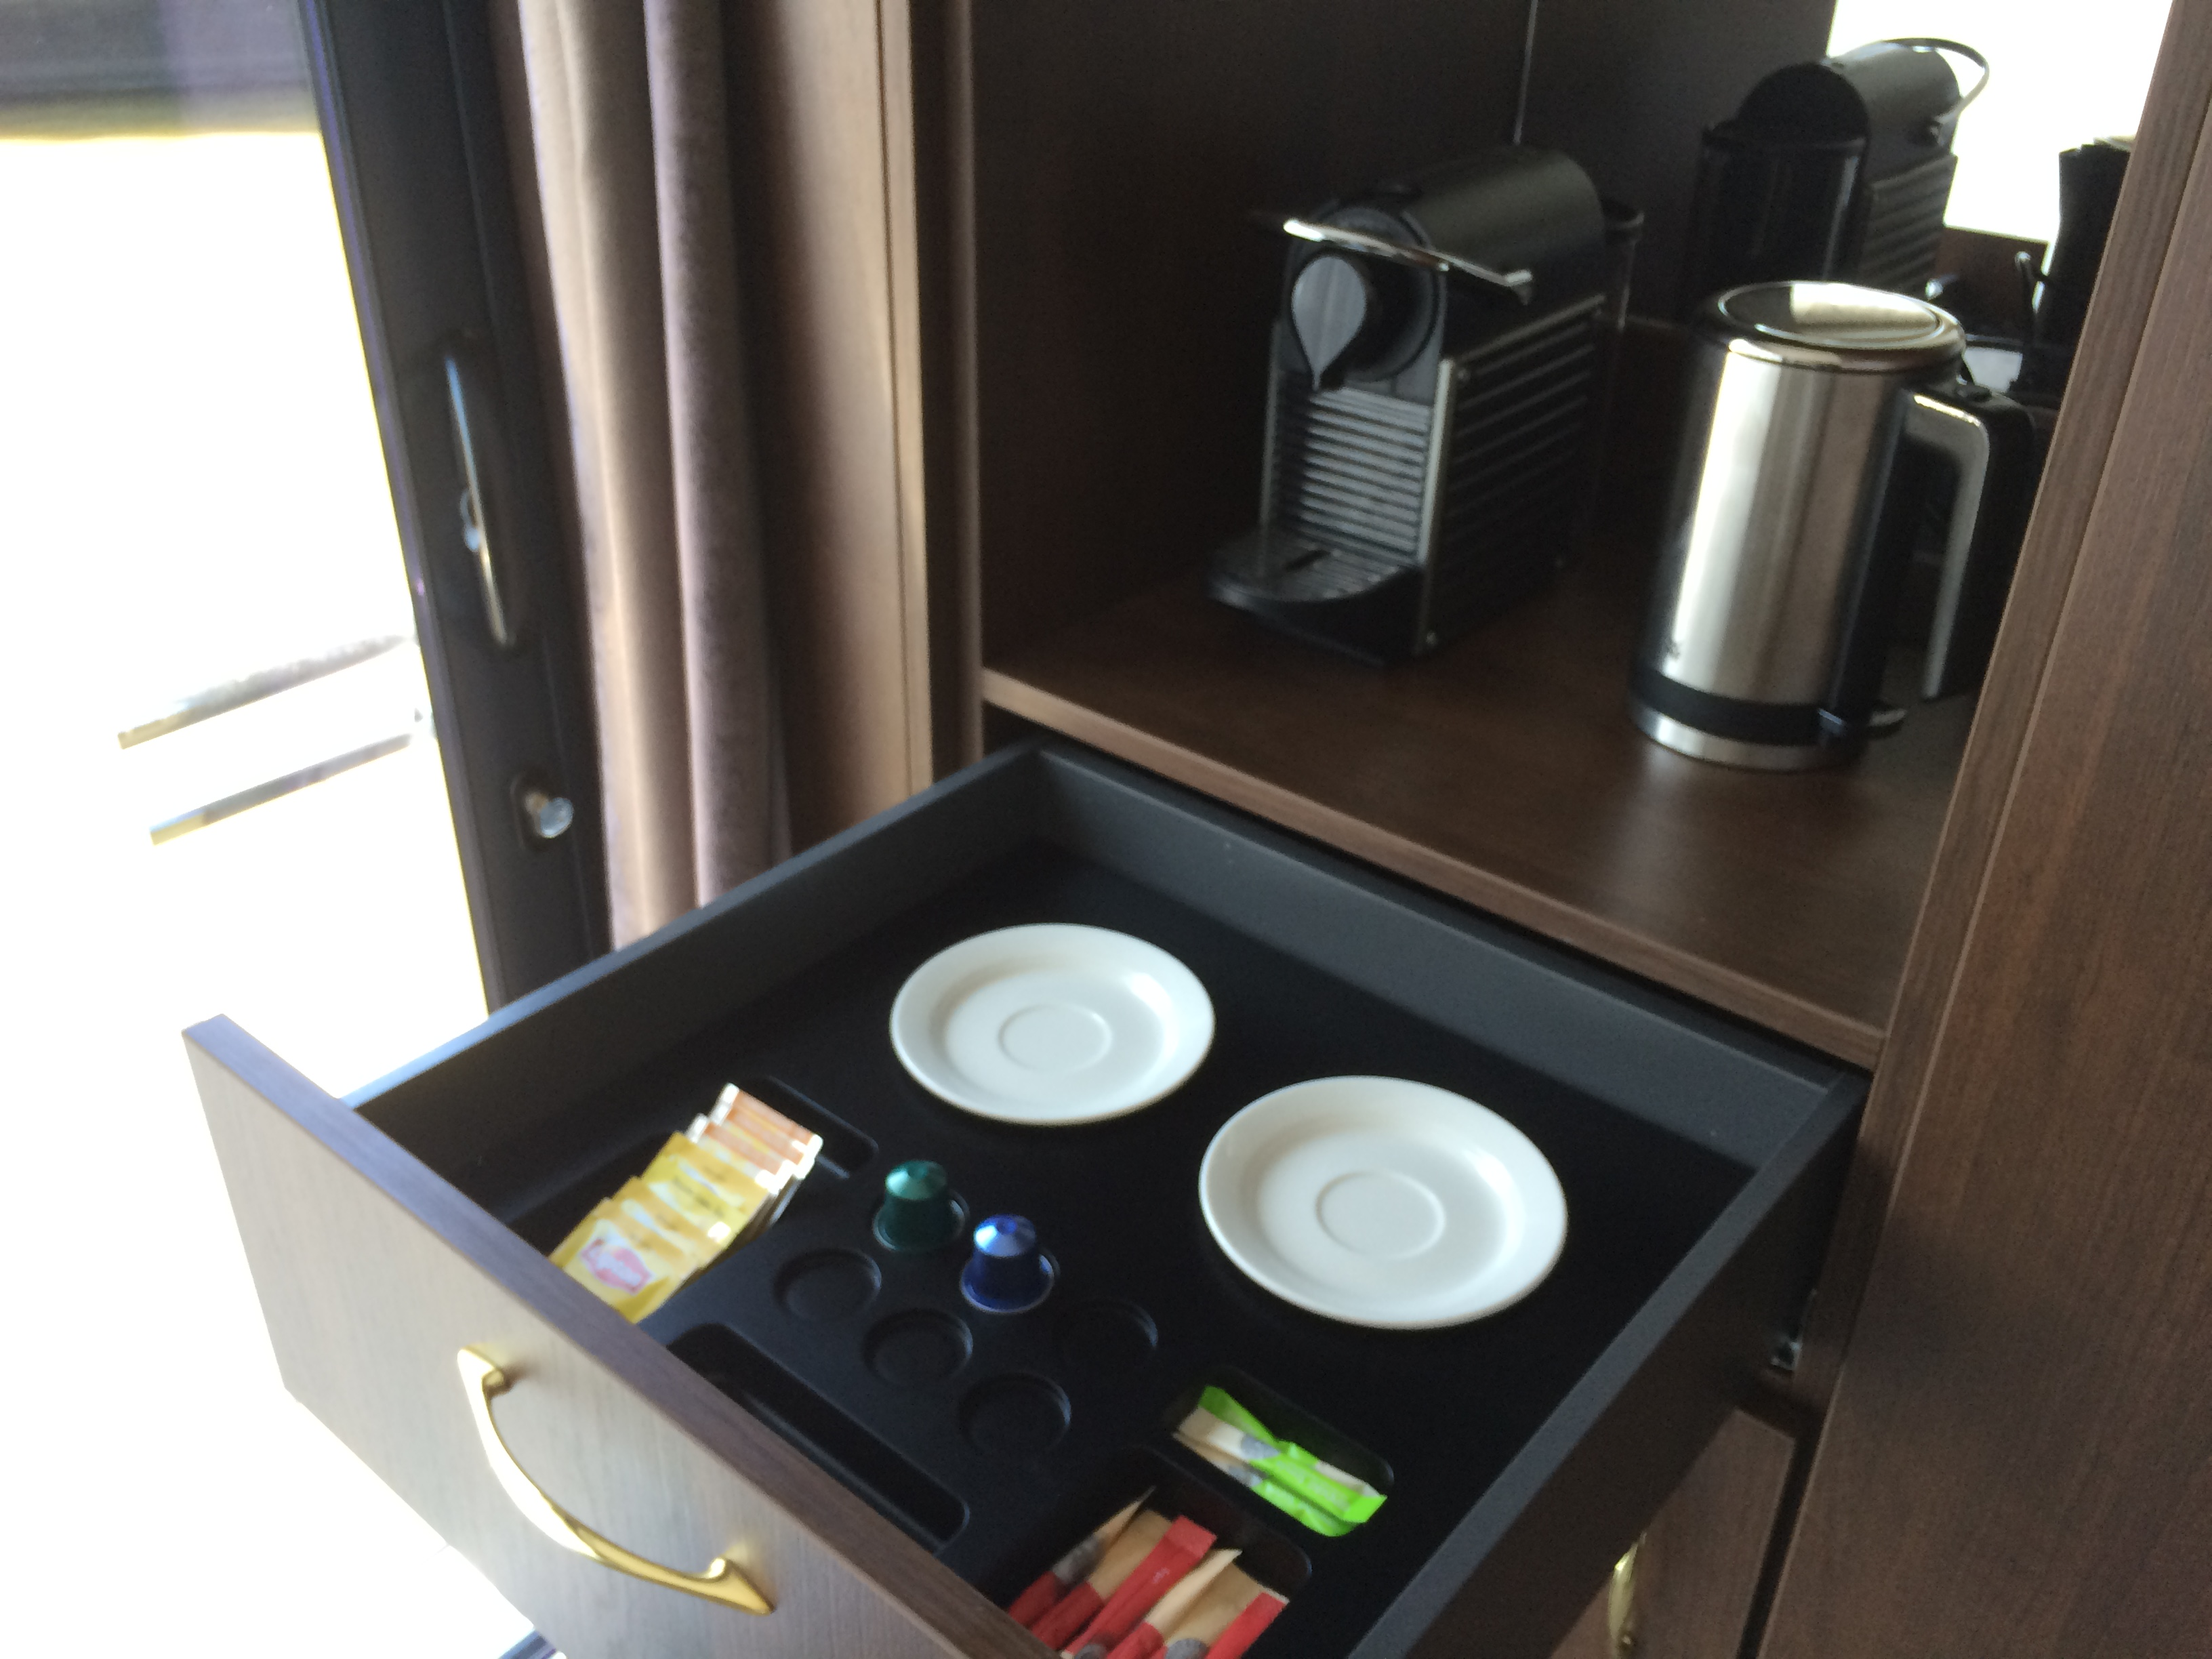 SCYLLA cruises has chosen for a custom made B-TRAY hospitality tray